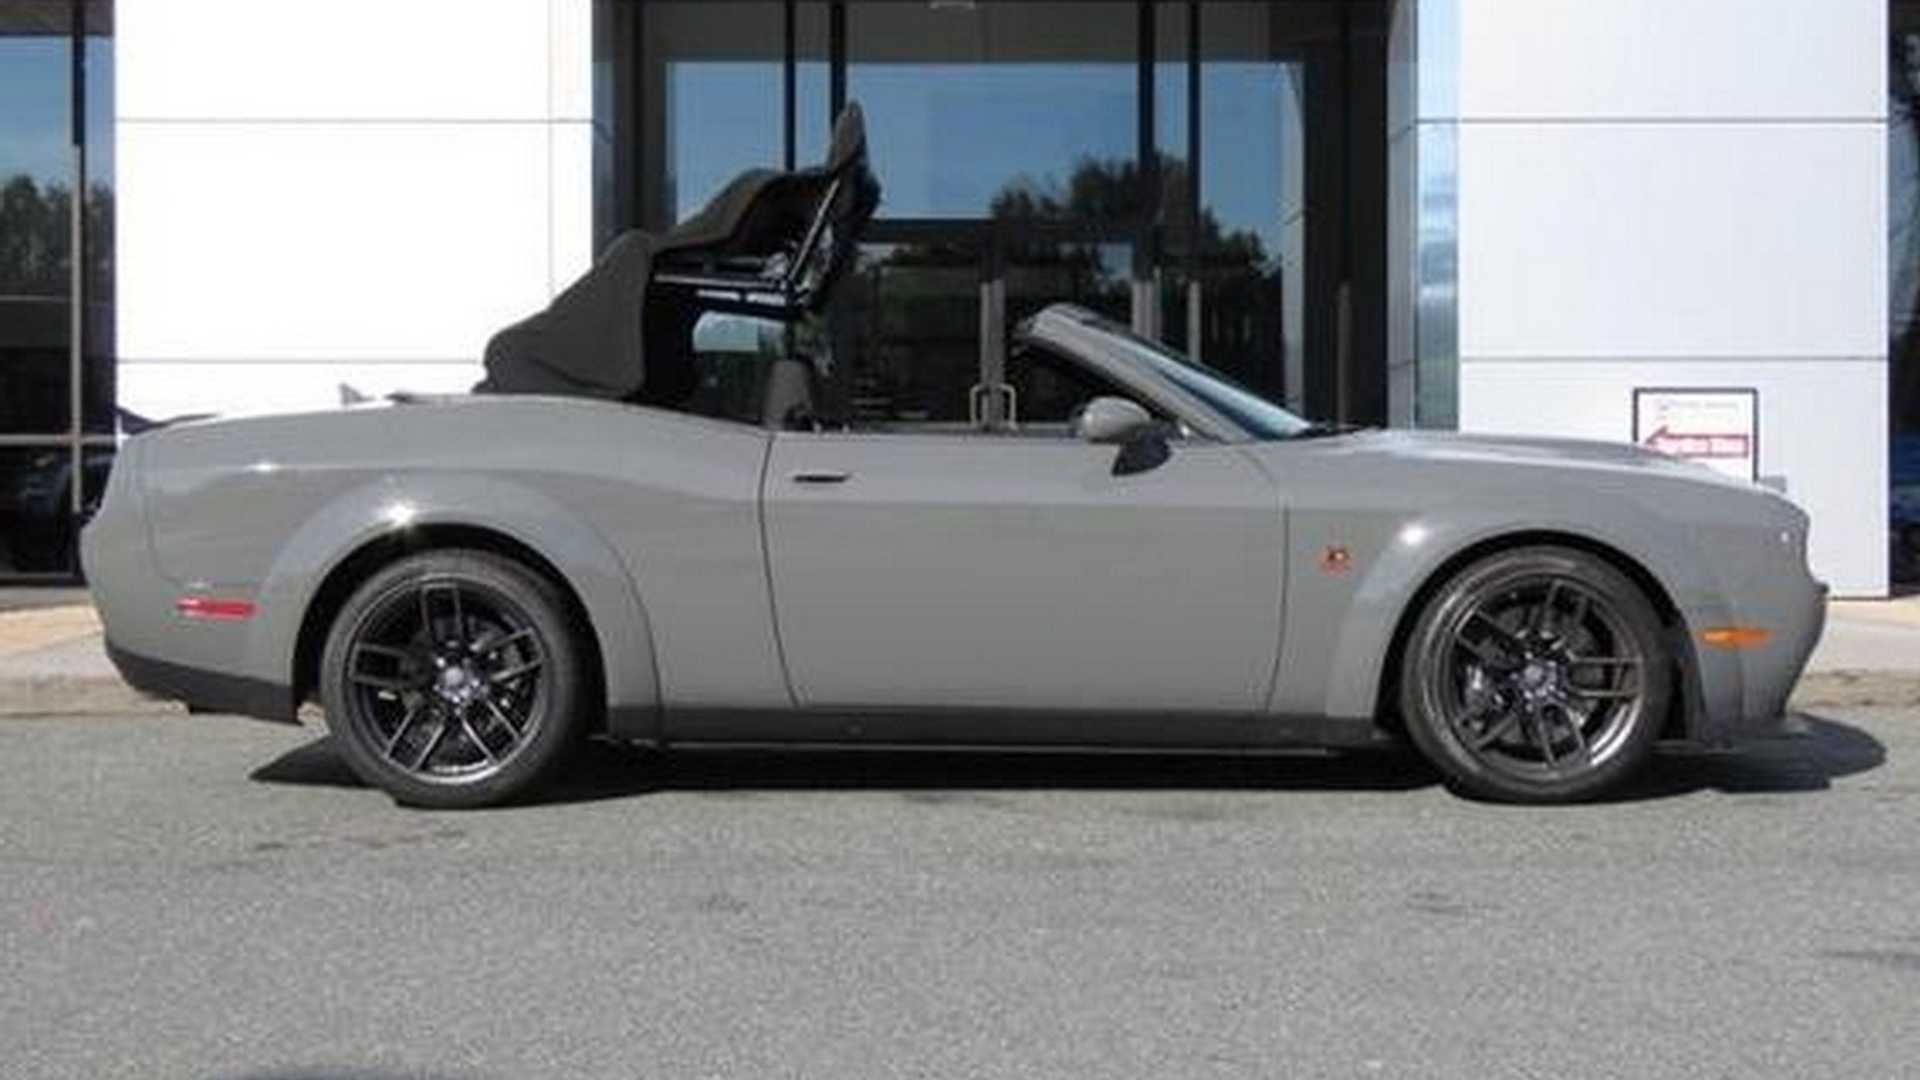 Dodge Challenger R/T Scat Pack Widebody Convertible Can Be Yours